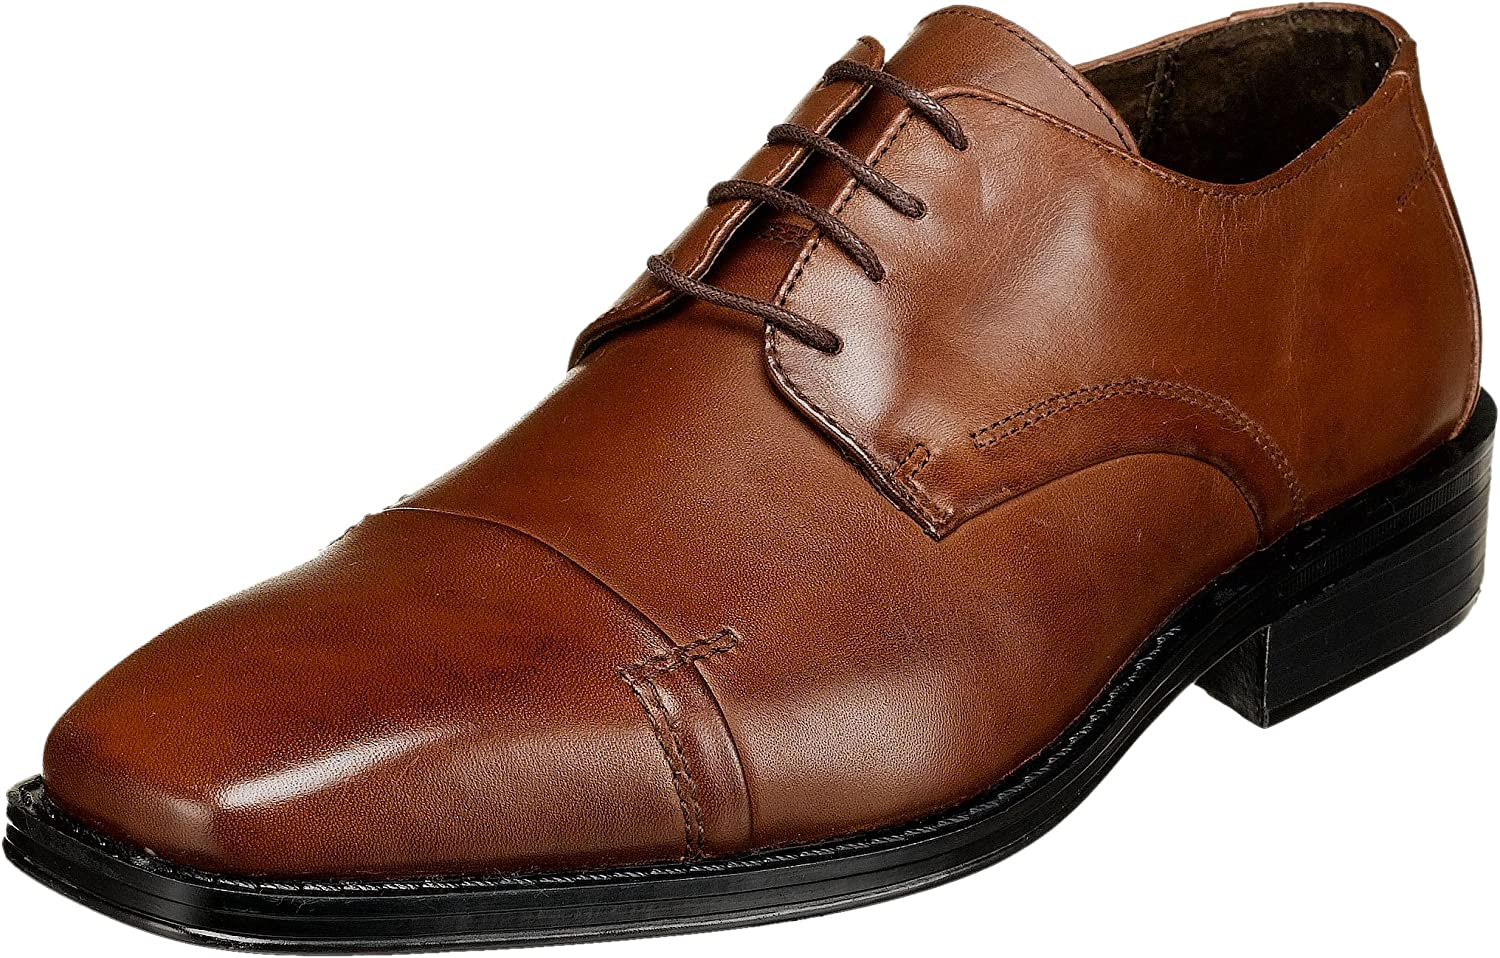 Kenneth Cole Unlisted Men's Copa Club Oxford